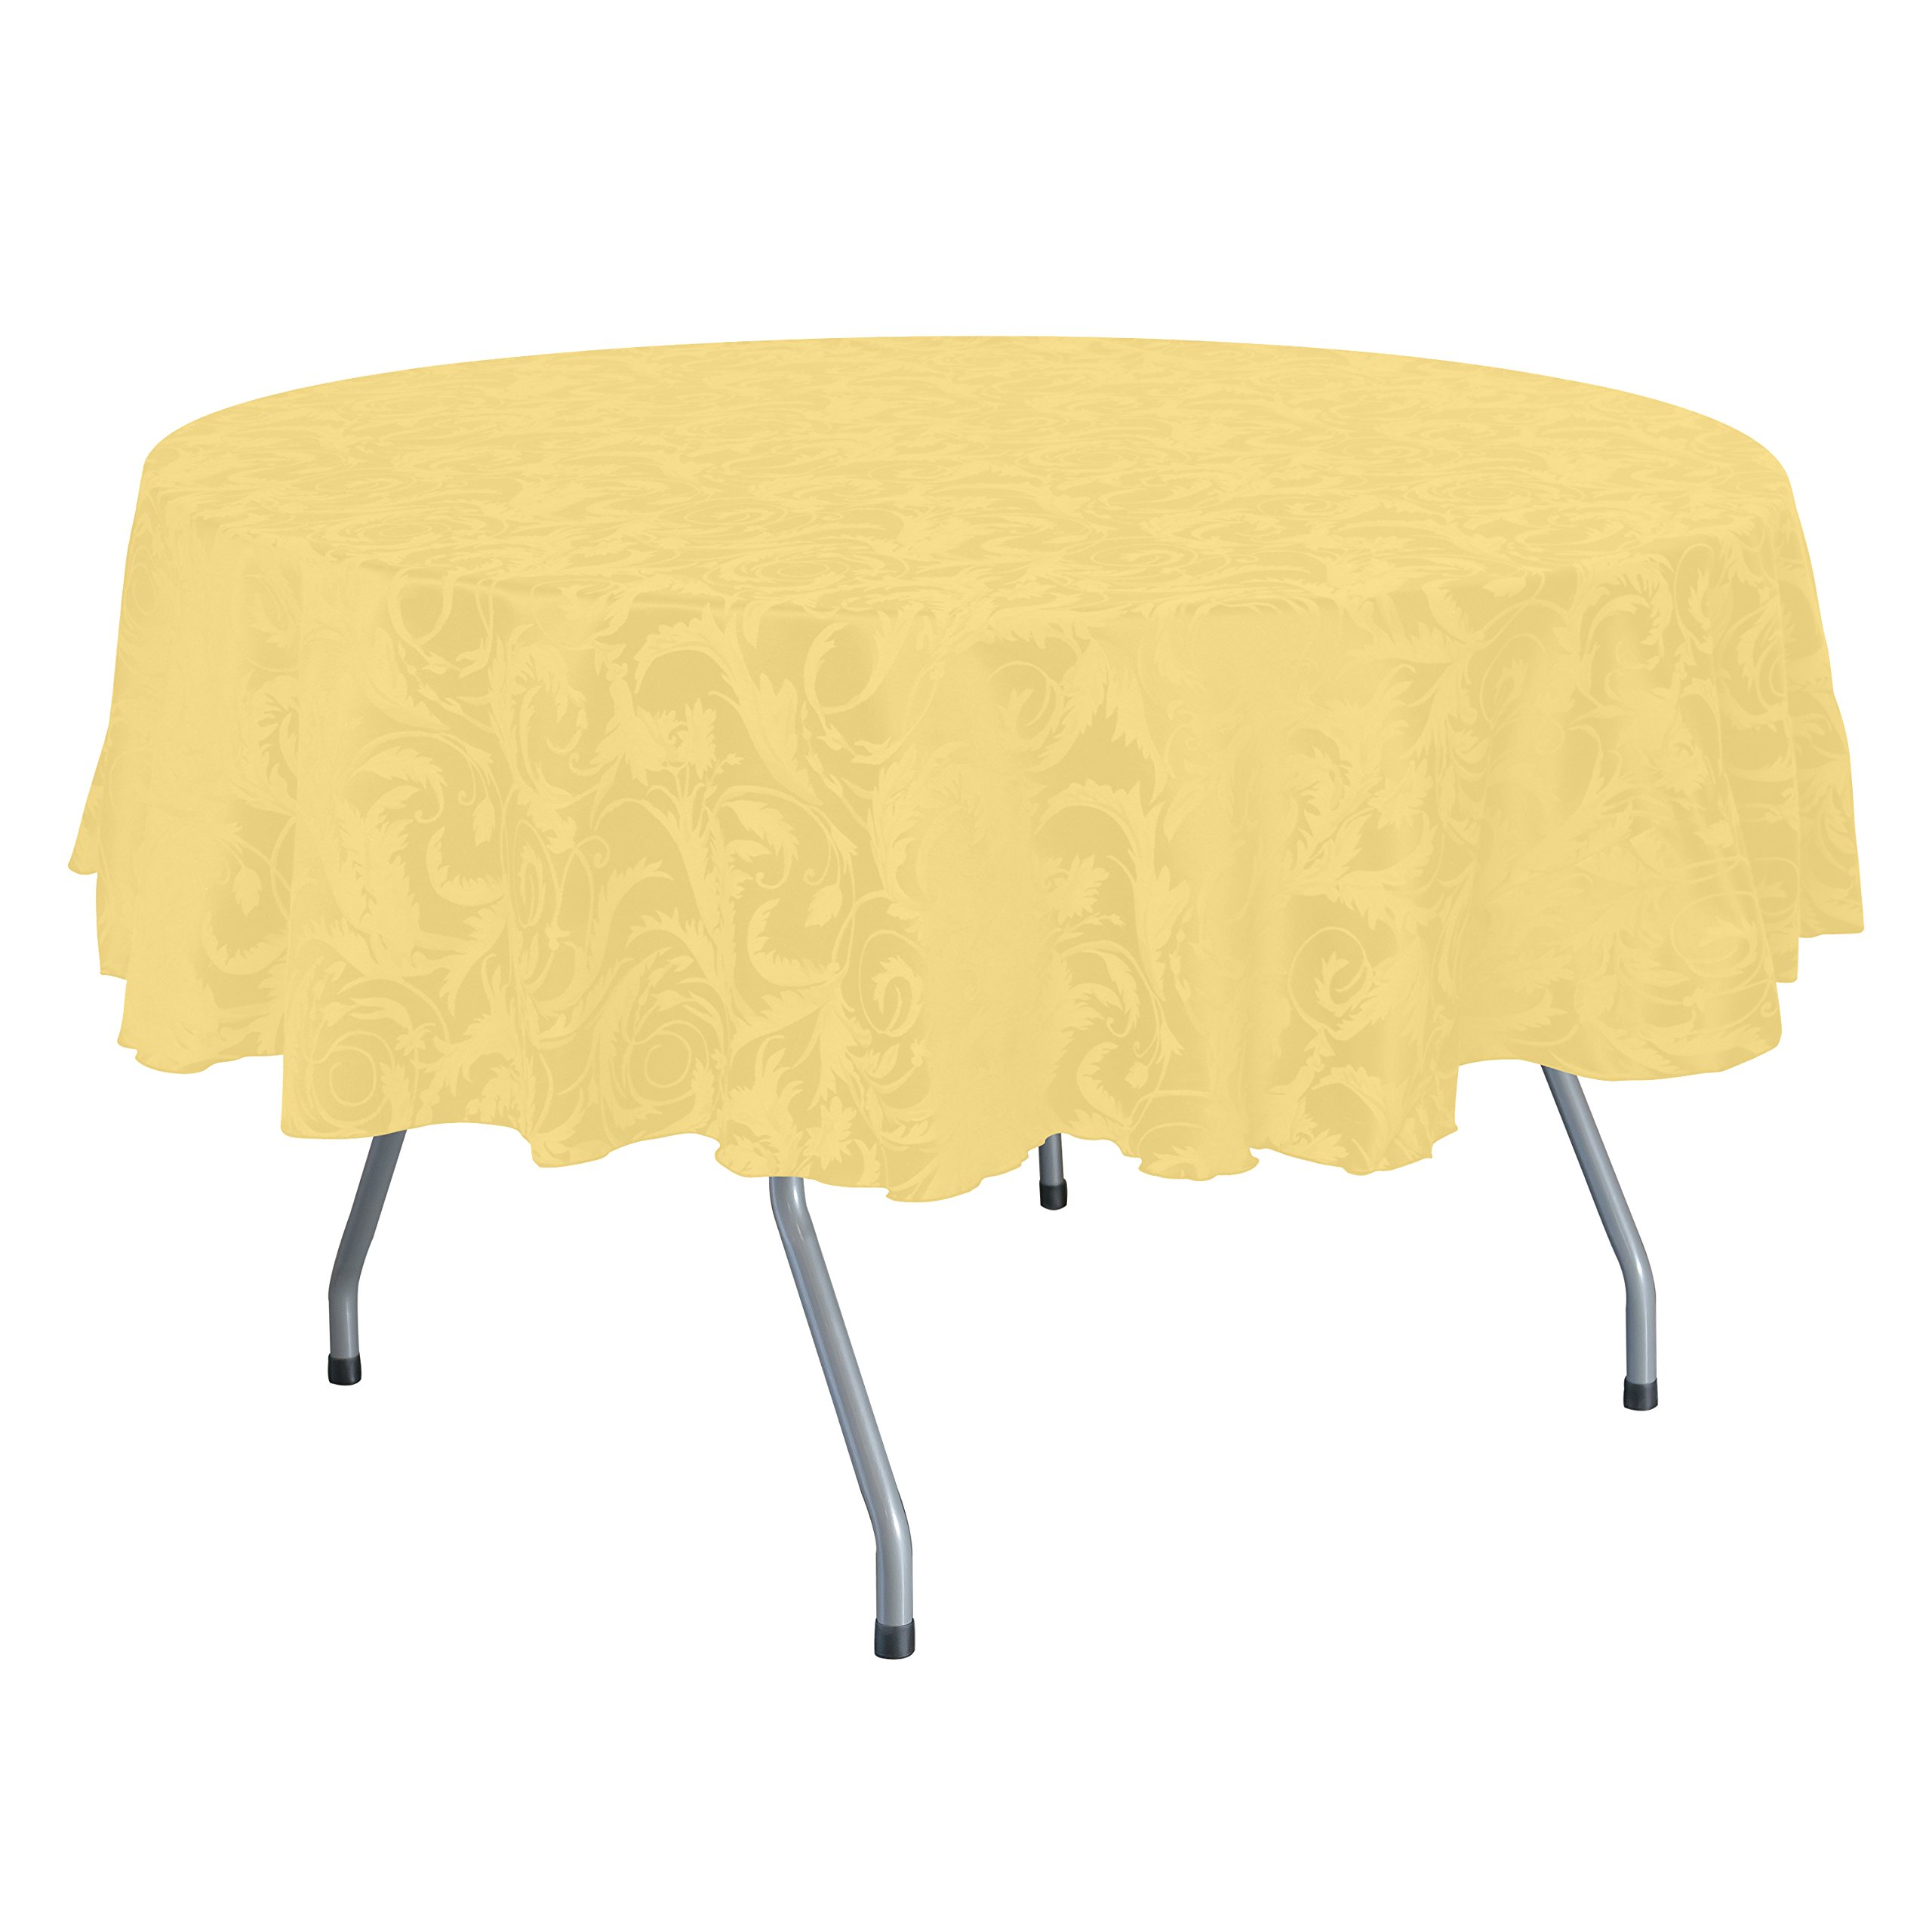 Ultimate Textile (5 Pack) Damask Melrose 60 x 120 Inch Oval Tablecloth - Home Dining Collection - Floral Leaf Scroll Jacquard Design, Gold by Ultimate Textile (Image #1)